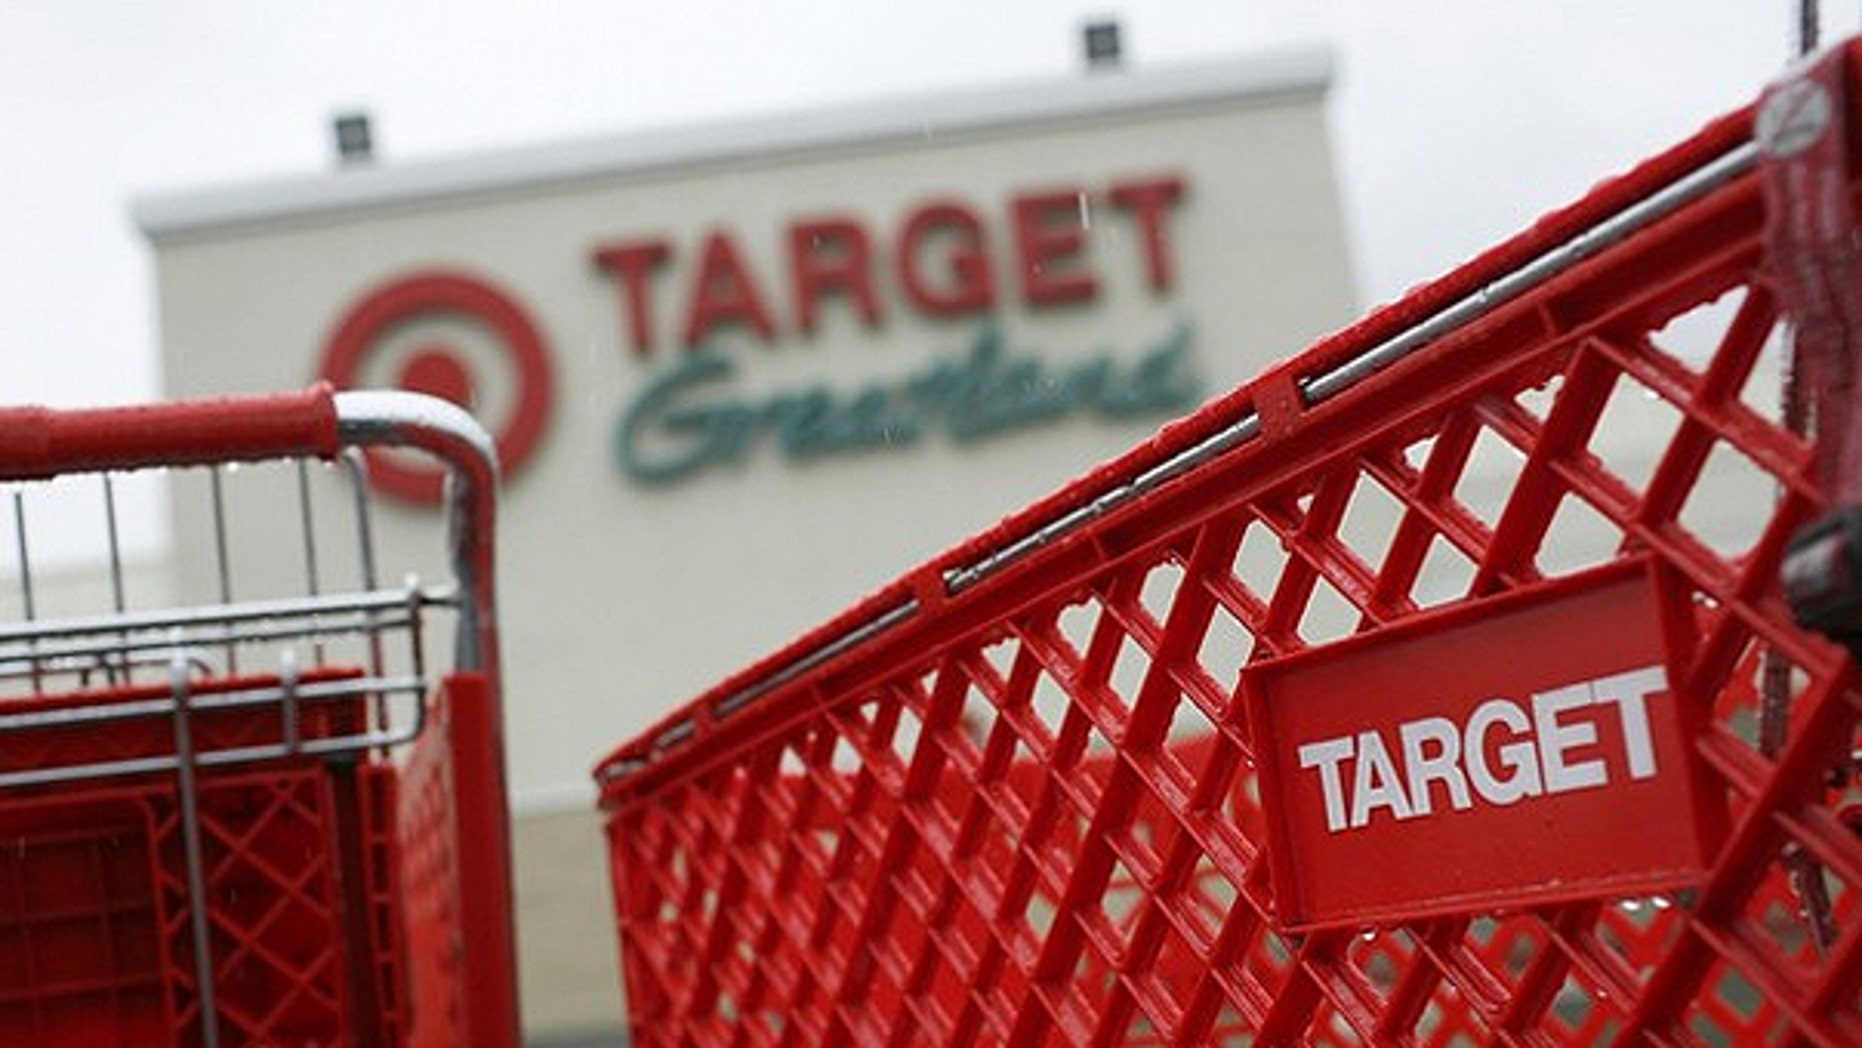 Feb. 23, 2010: A Target retail store is shown in Daly City, California.